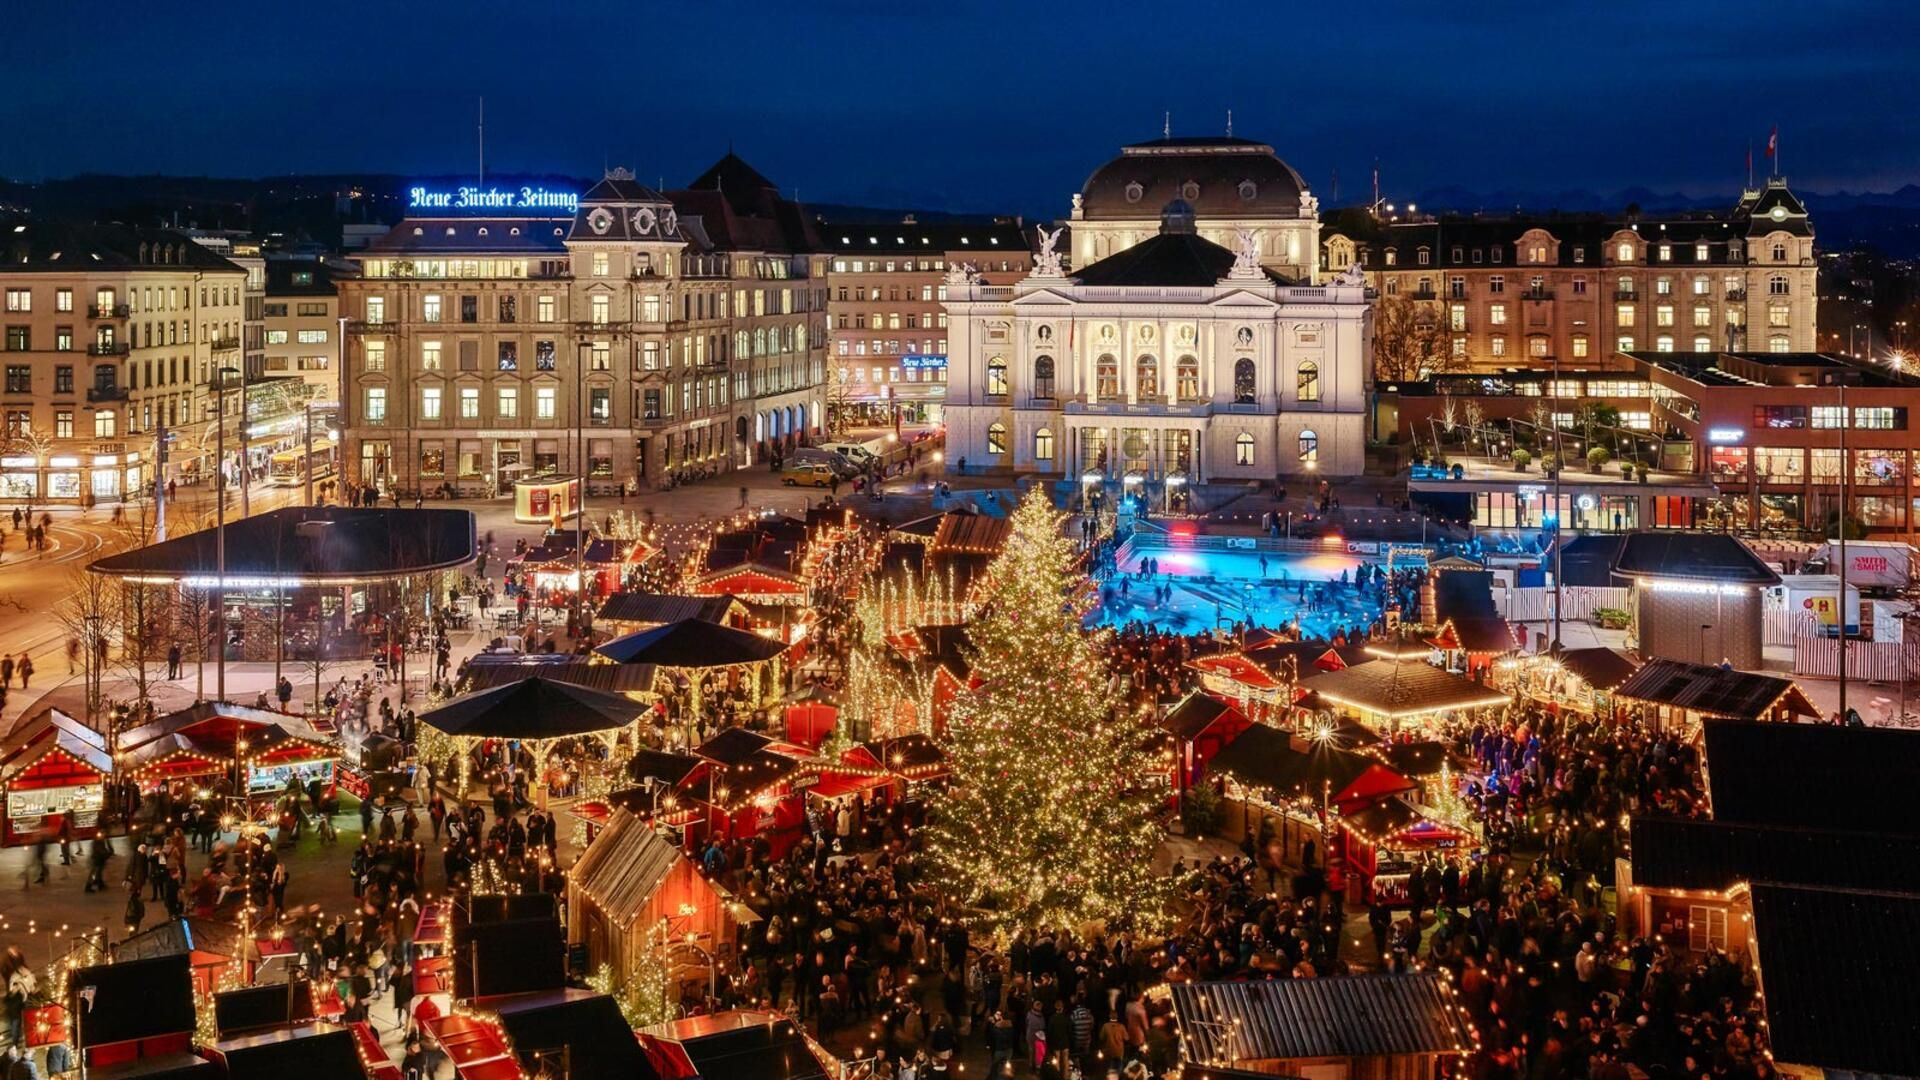 Zurich S Most Beautiful Christmas Markets In 2020 Christmas Market Europe Destinations Zurich